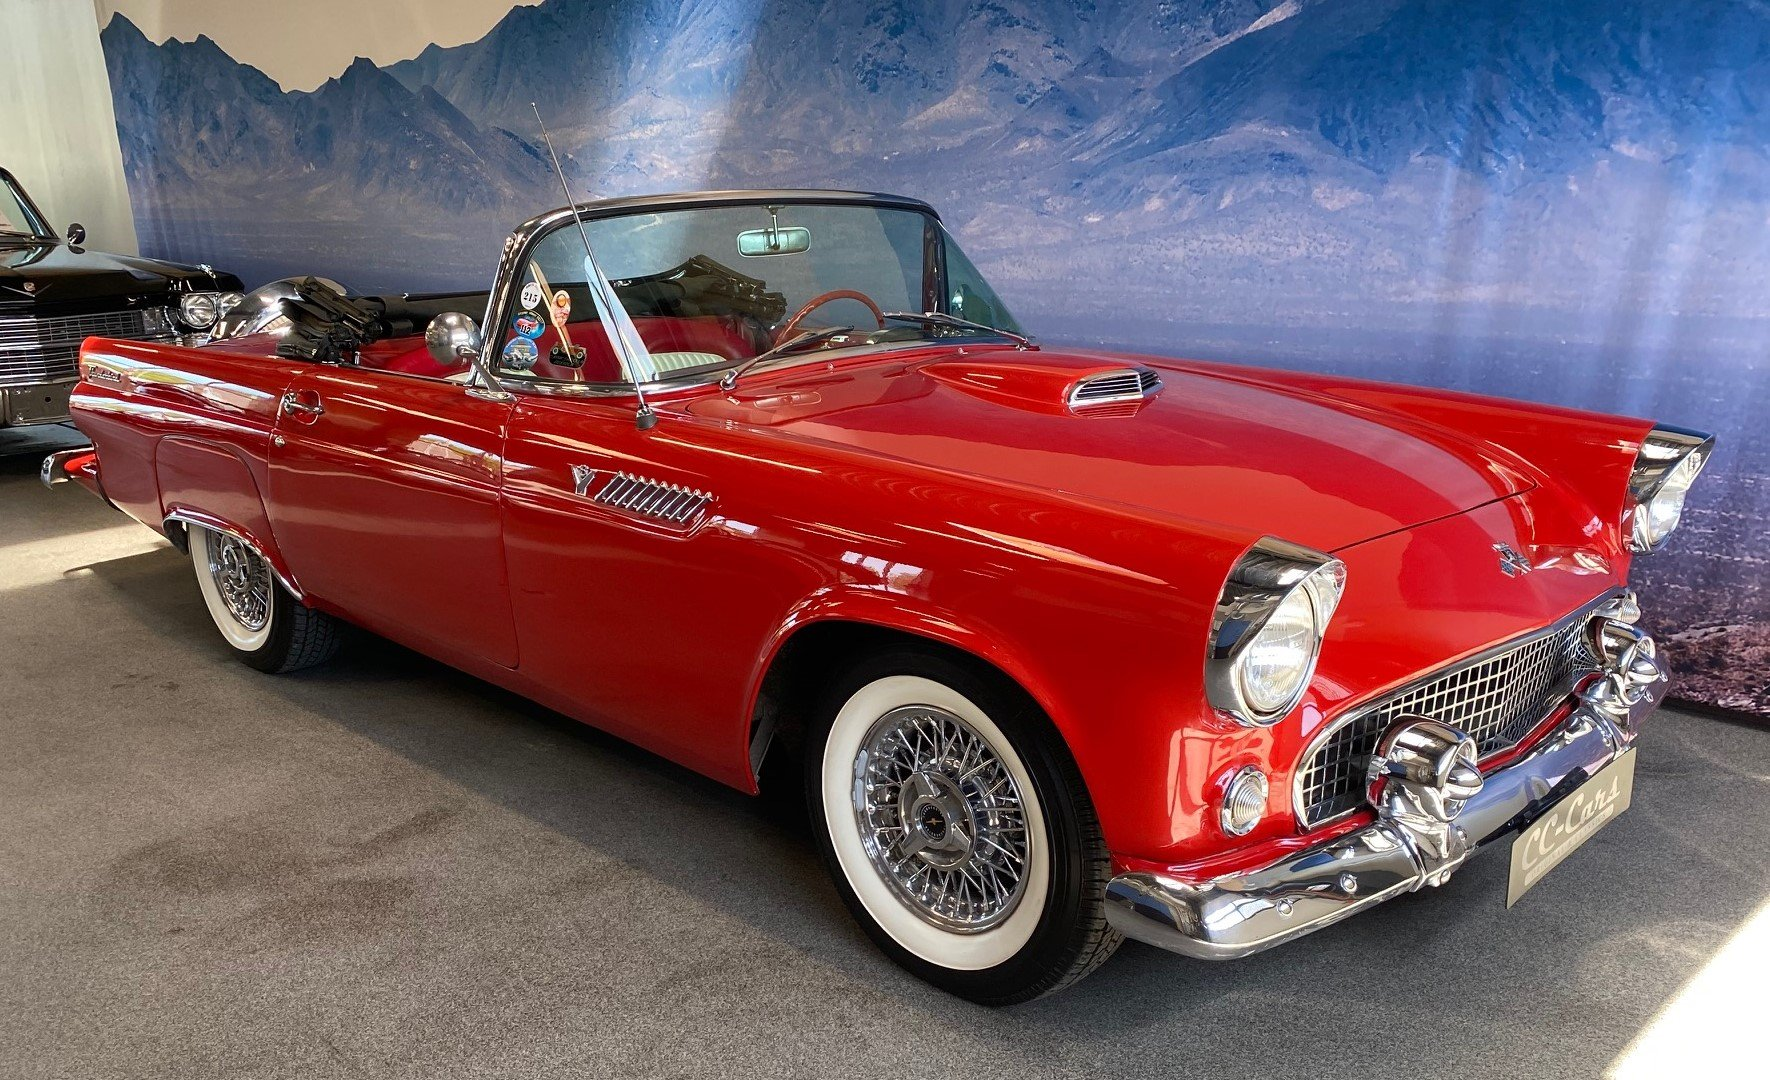 1955 Ford Thunderbird Roadster For Sale (picture 1 of 6)